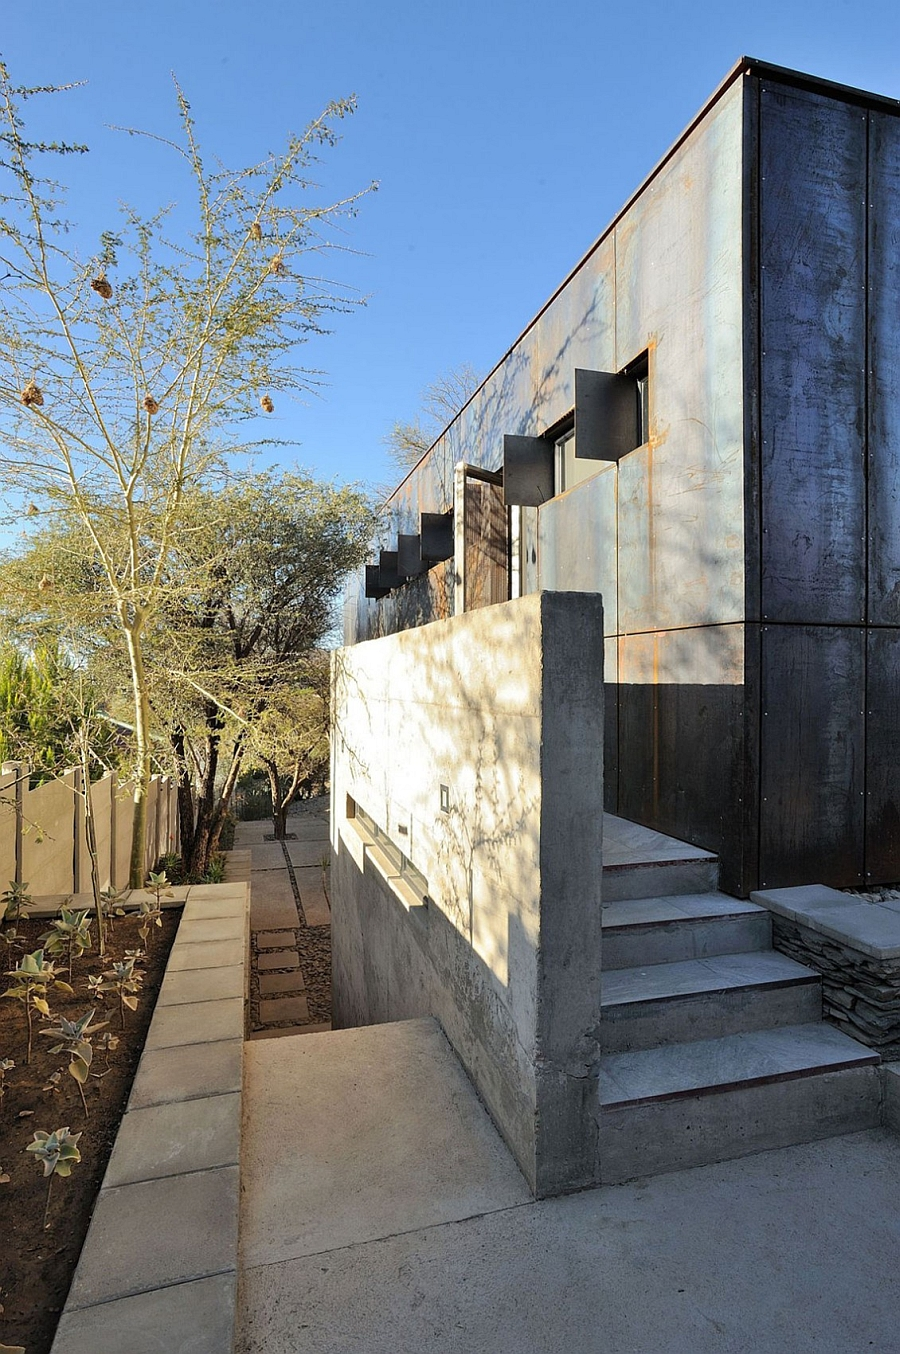 Concrete blocks were repurposed and used to shape the entrance